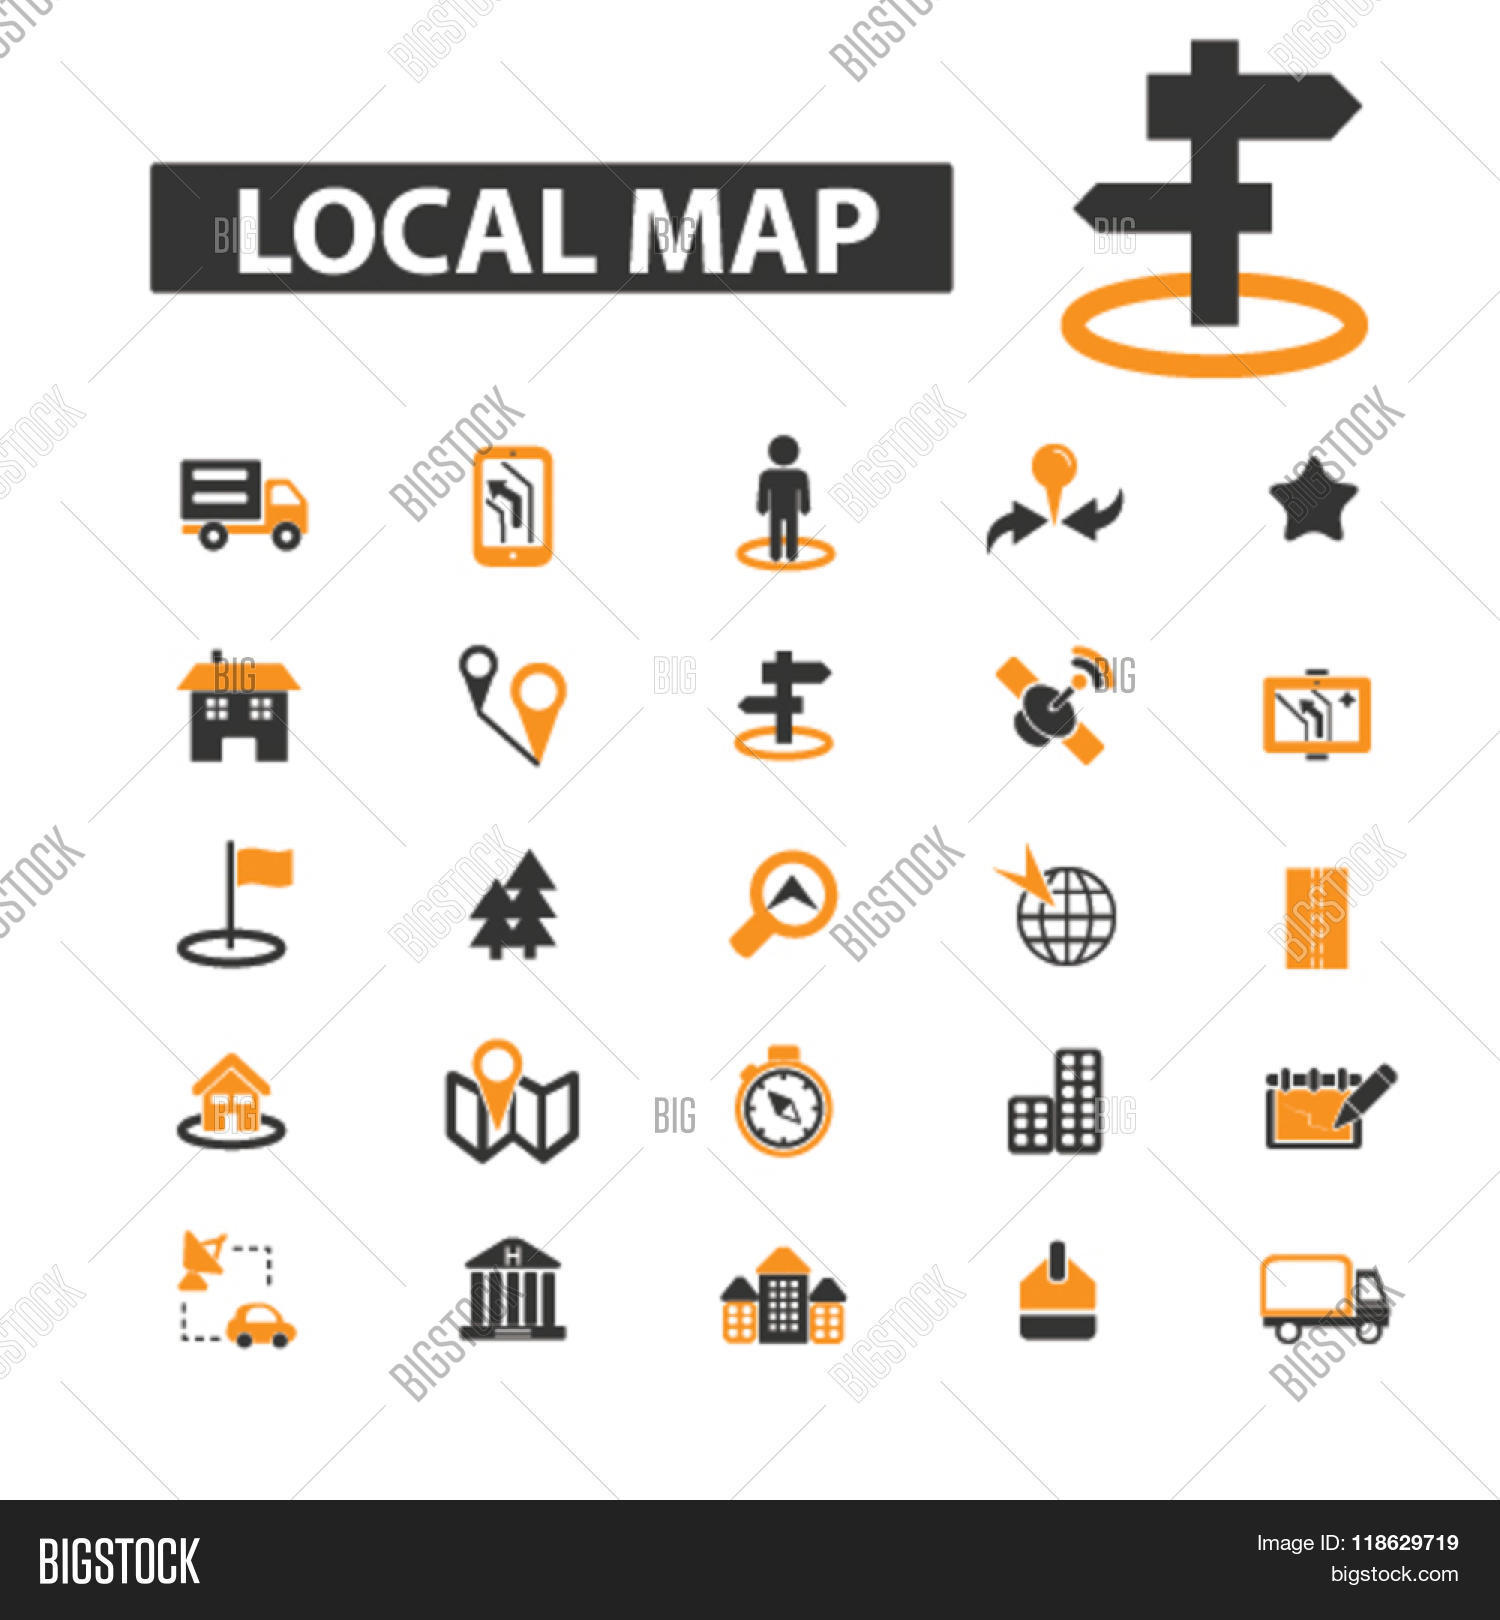 Local Map Icons Vector Photo Free Trial Bigstock